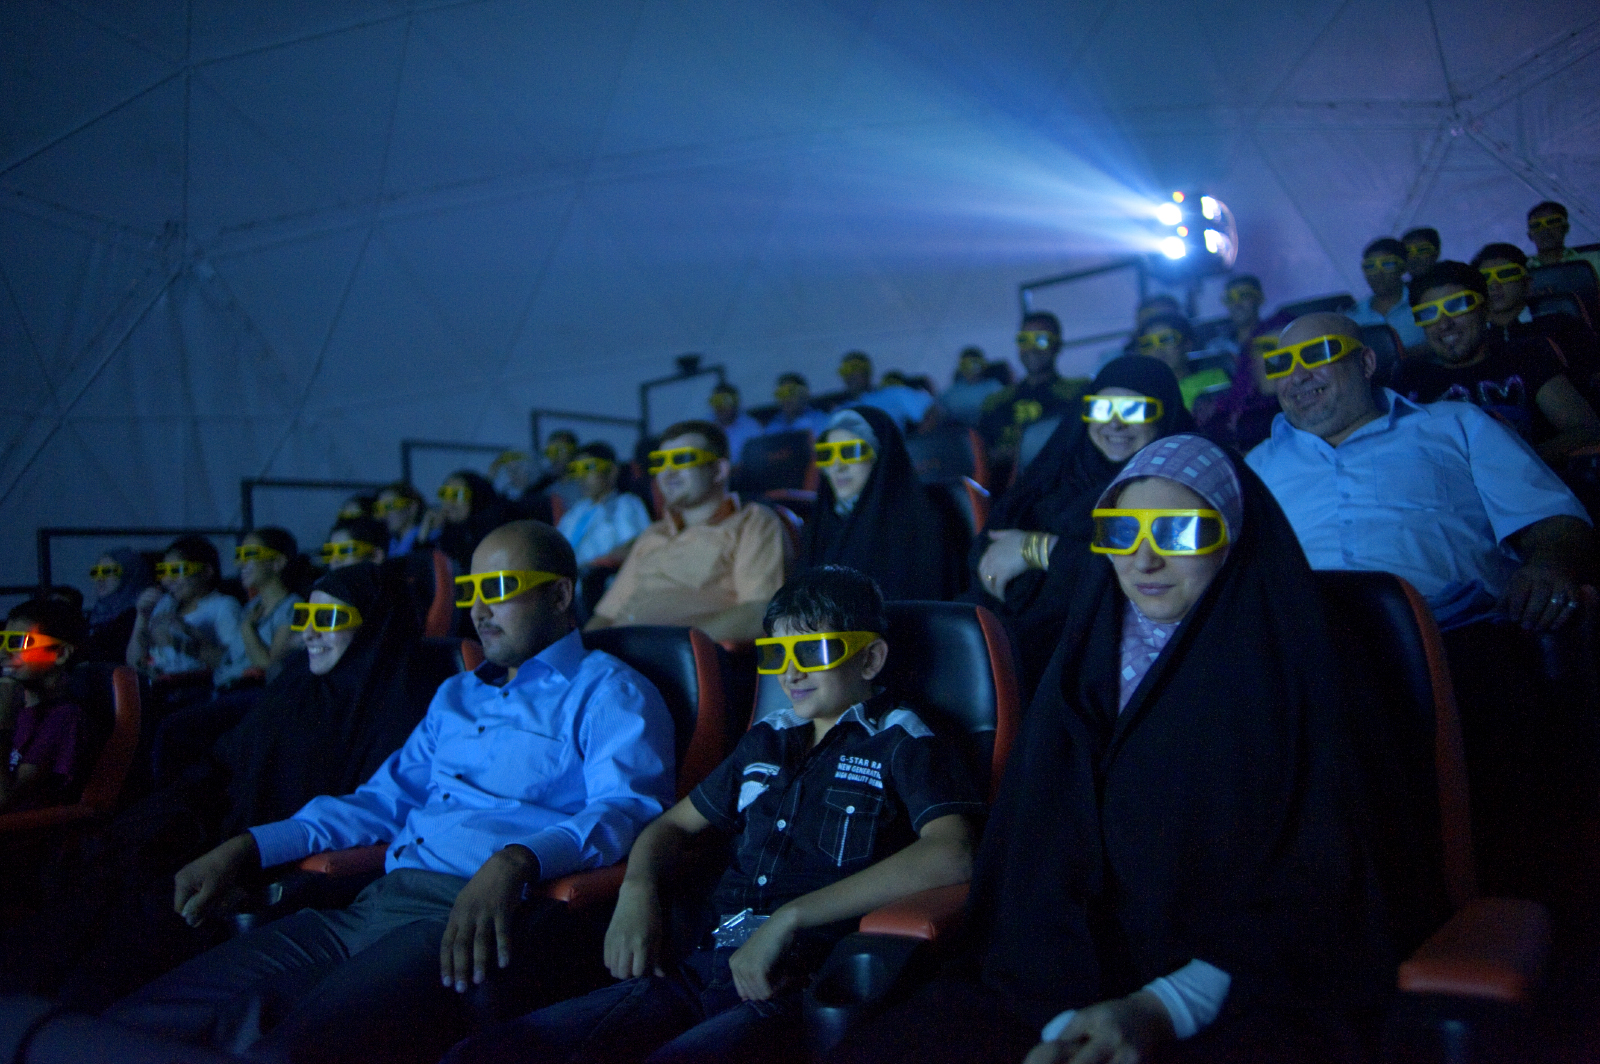 Baghdad's first, 4D theater at amusement park, need name.Contact info:Sarah Mustafa: sarah_wdmm@yahoo.com. cell: +9647904894828Yousif al Tamimi, my other translatorCell: +964770791895 Email: iyousif_altimimi@yahoo.com